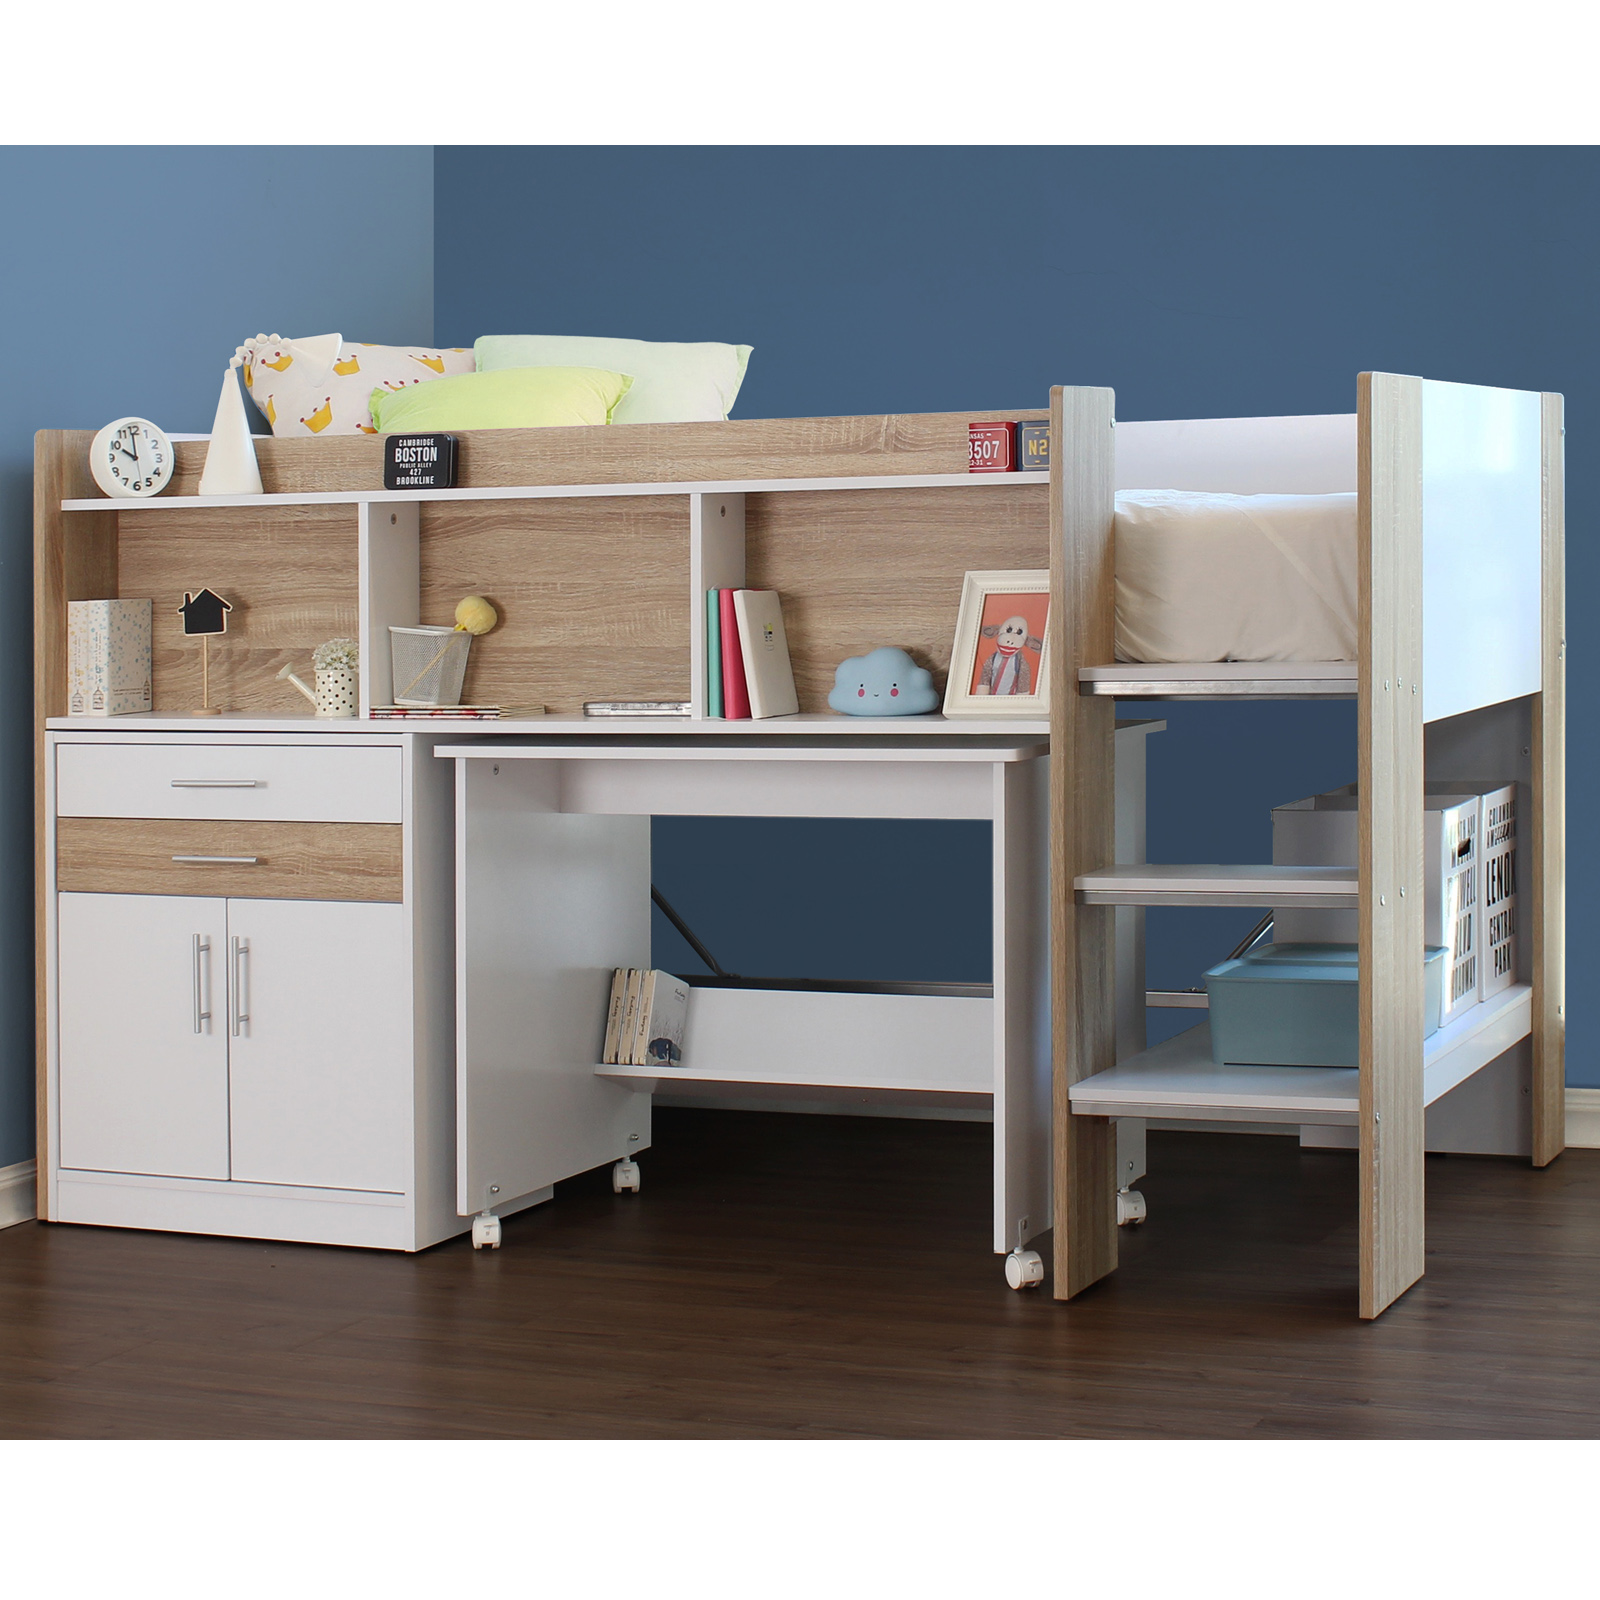 Single Midi Sleeper Bed With Desk Cabinet And Bookshelves